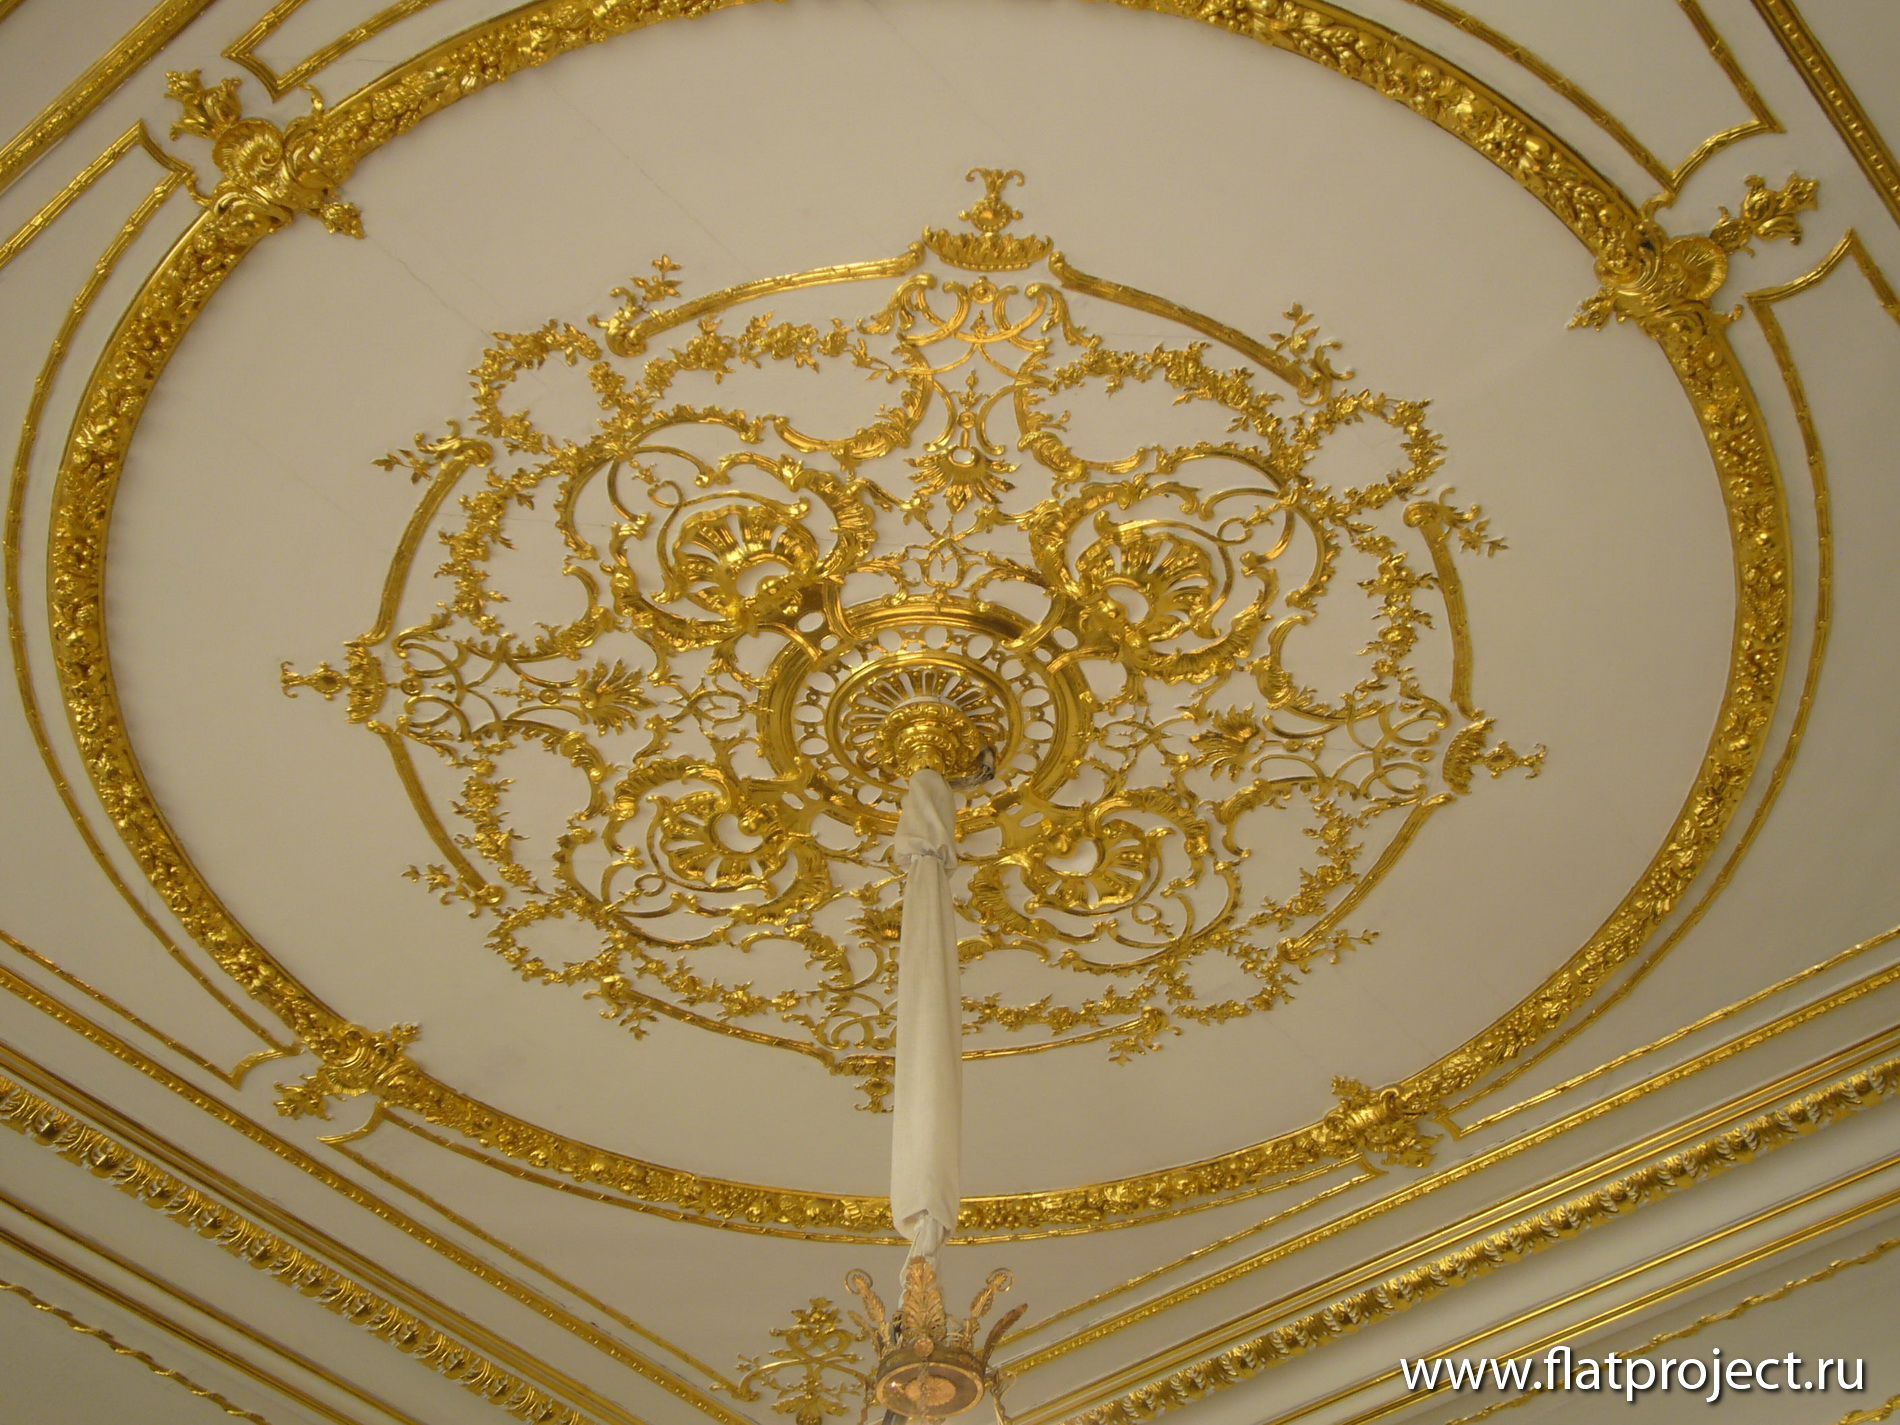 The State Russian museum interiors – photo 35